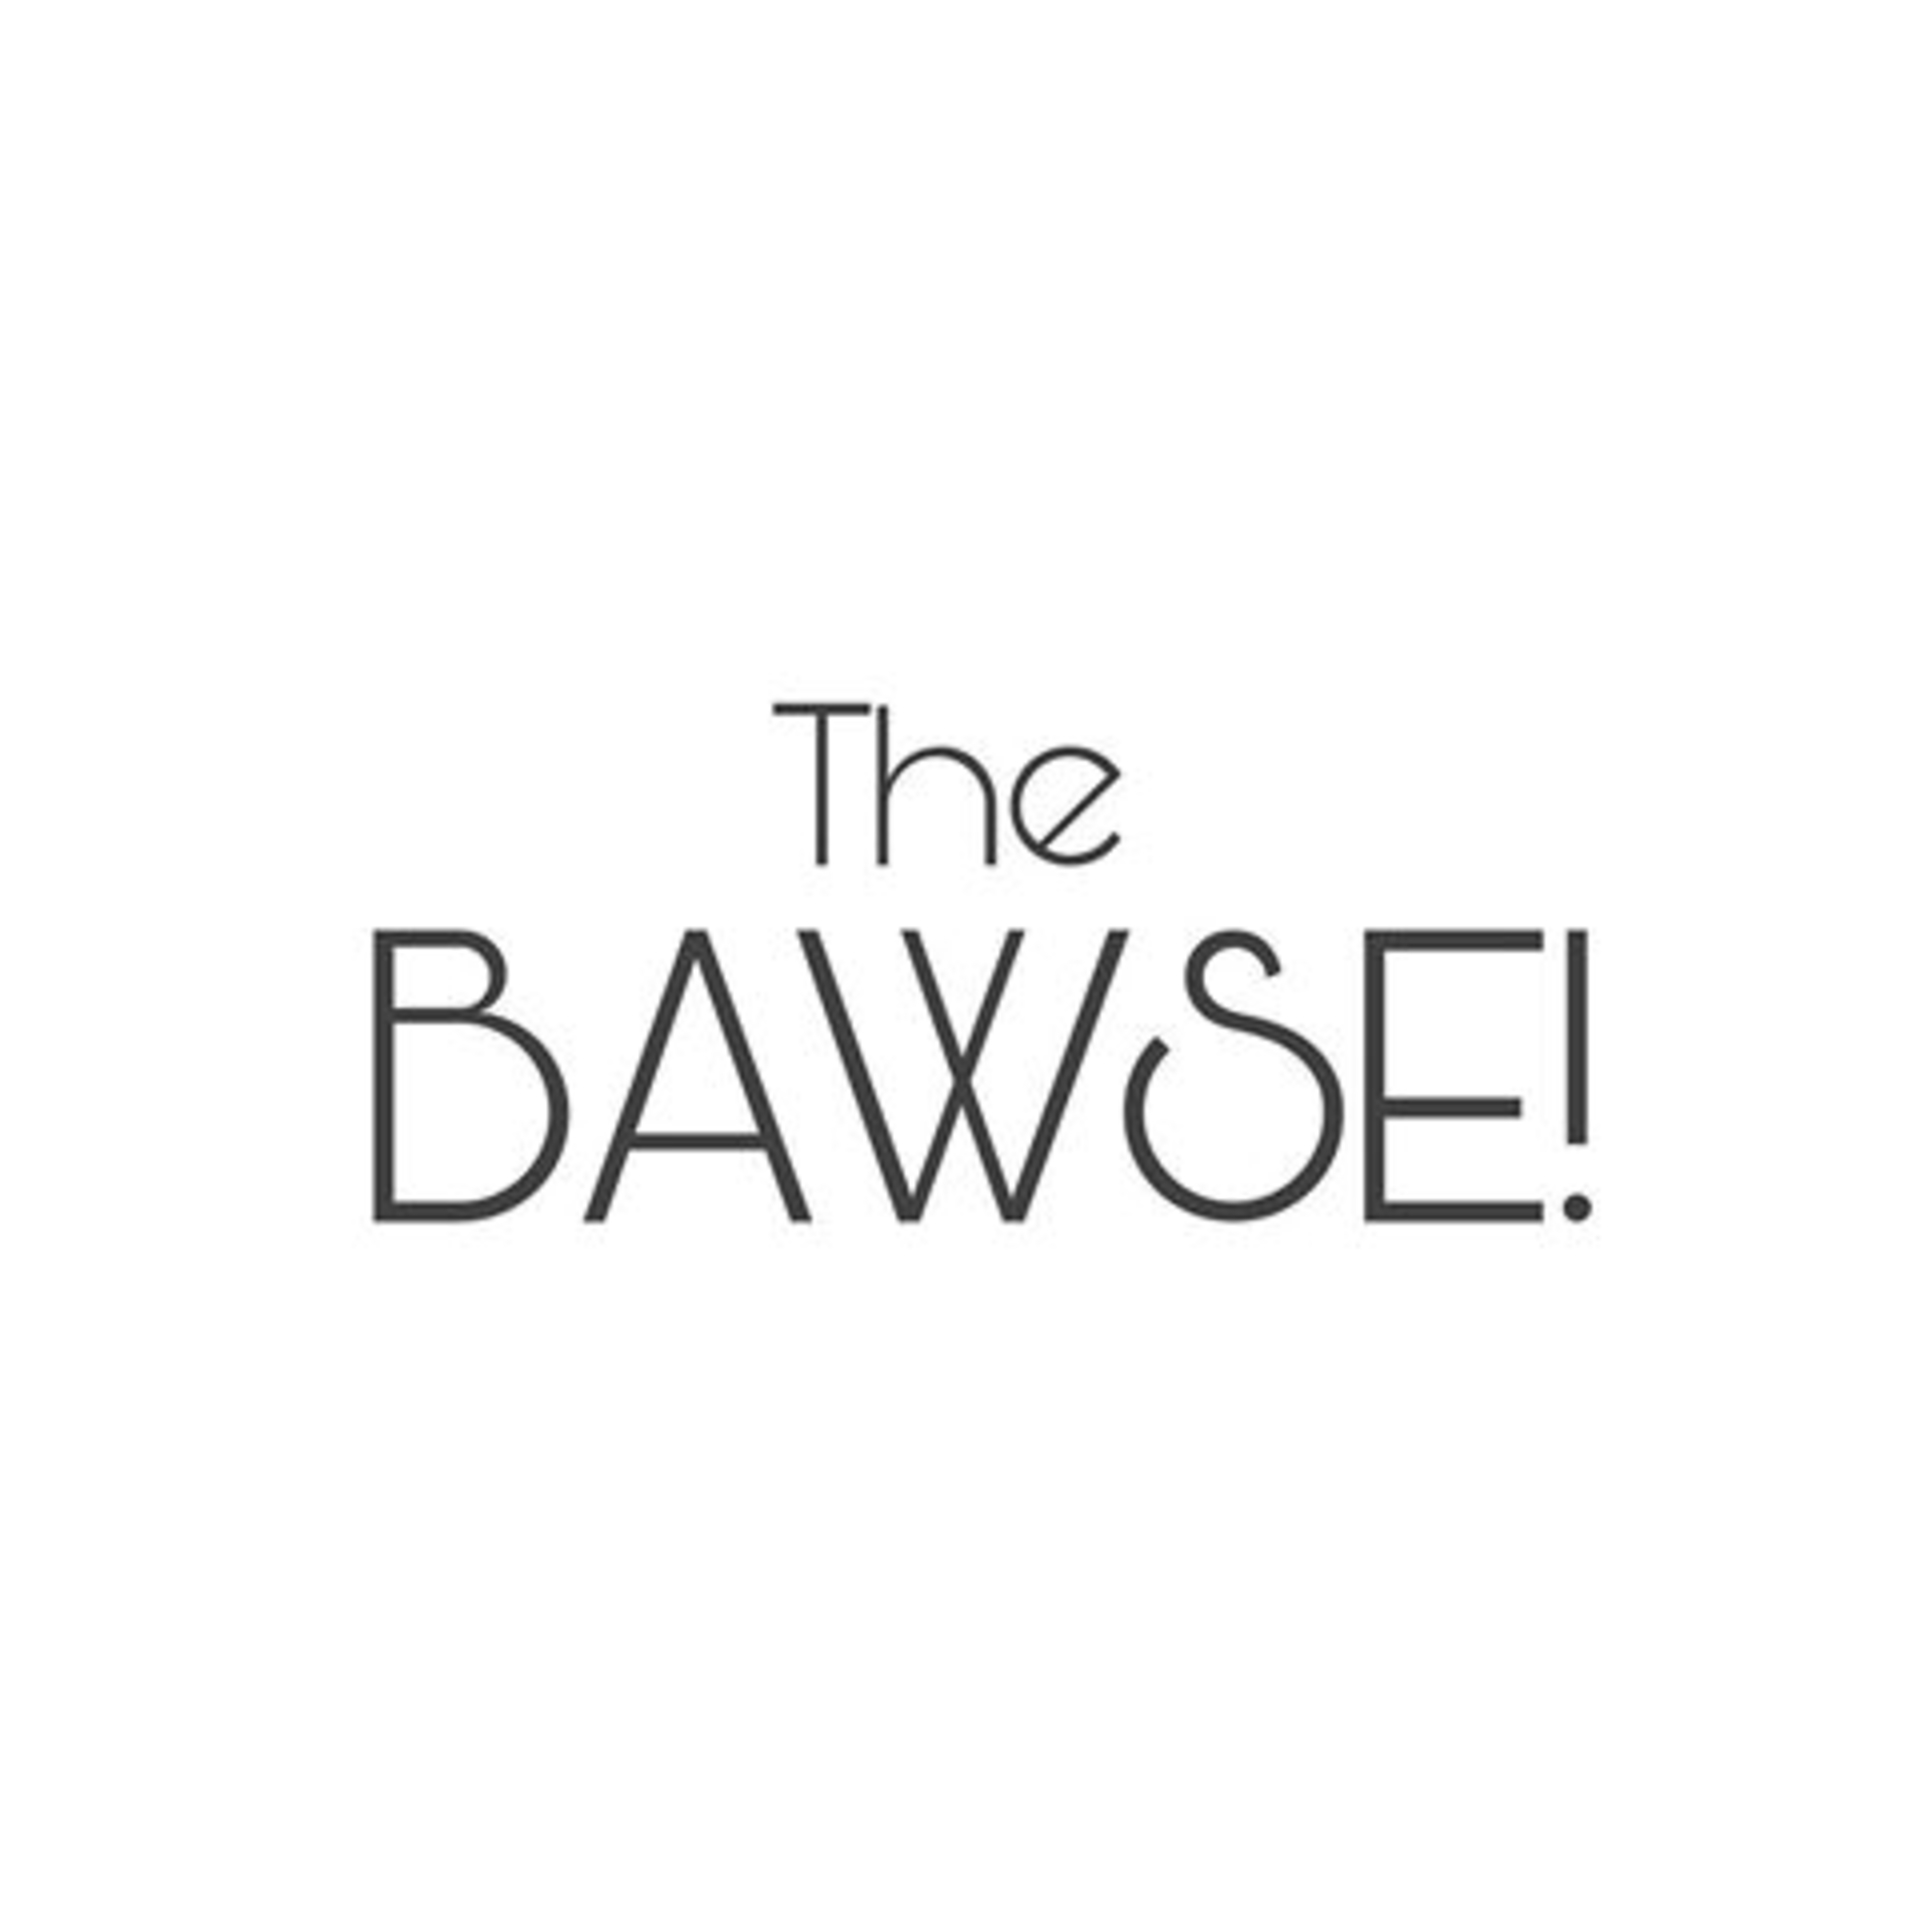 How To Be A Bawse // Things I Learned image